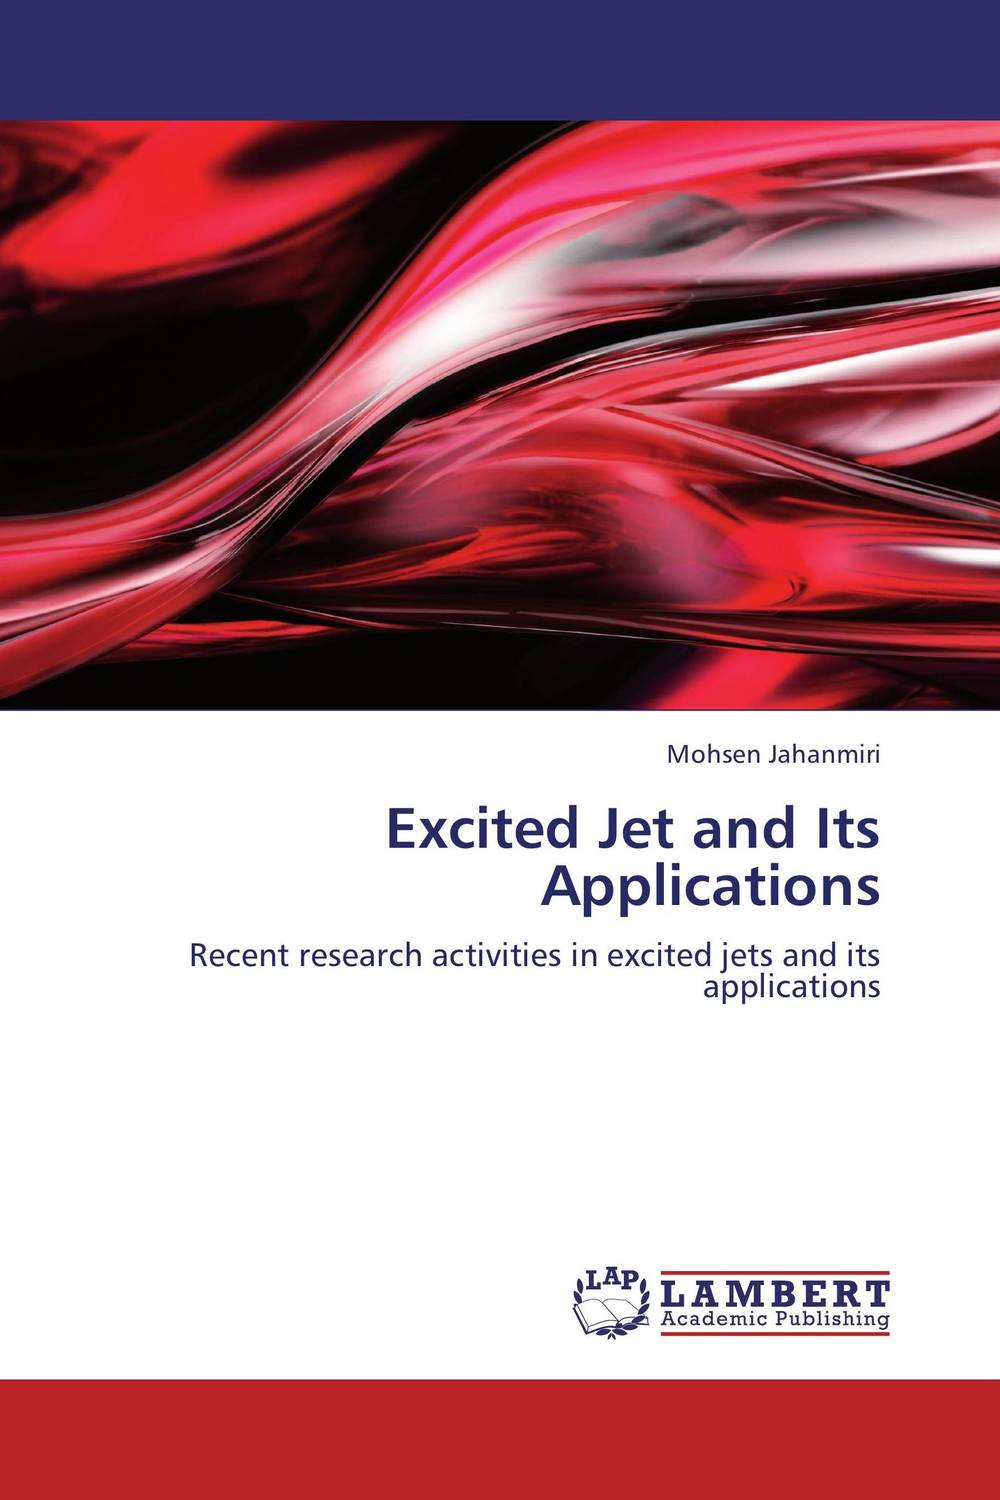 Excited Jet and Its Applications